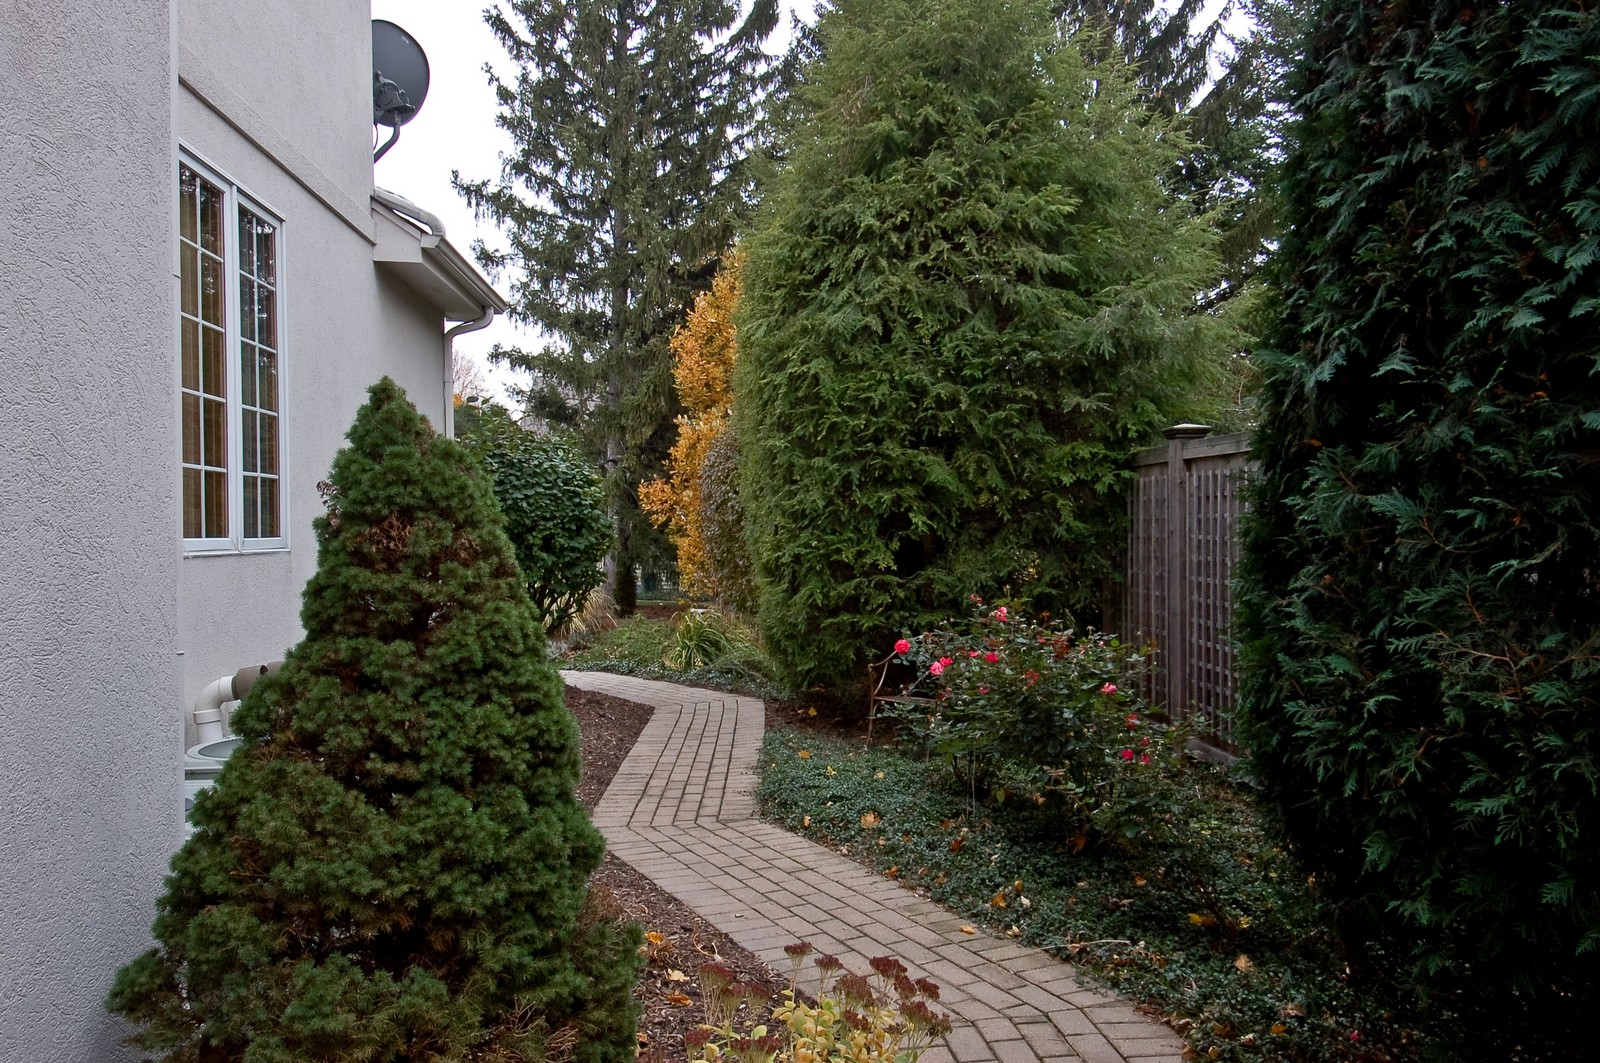 Real Estate Photography - 1492 Lloyd, Wheaton, IL, 60189 - Side yard walkway